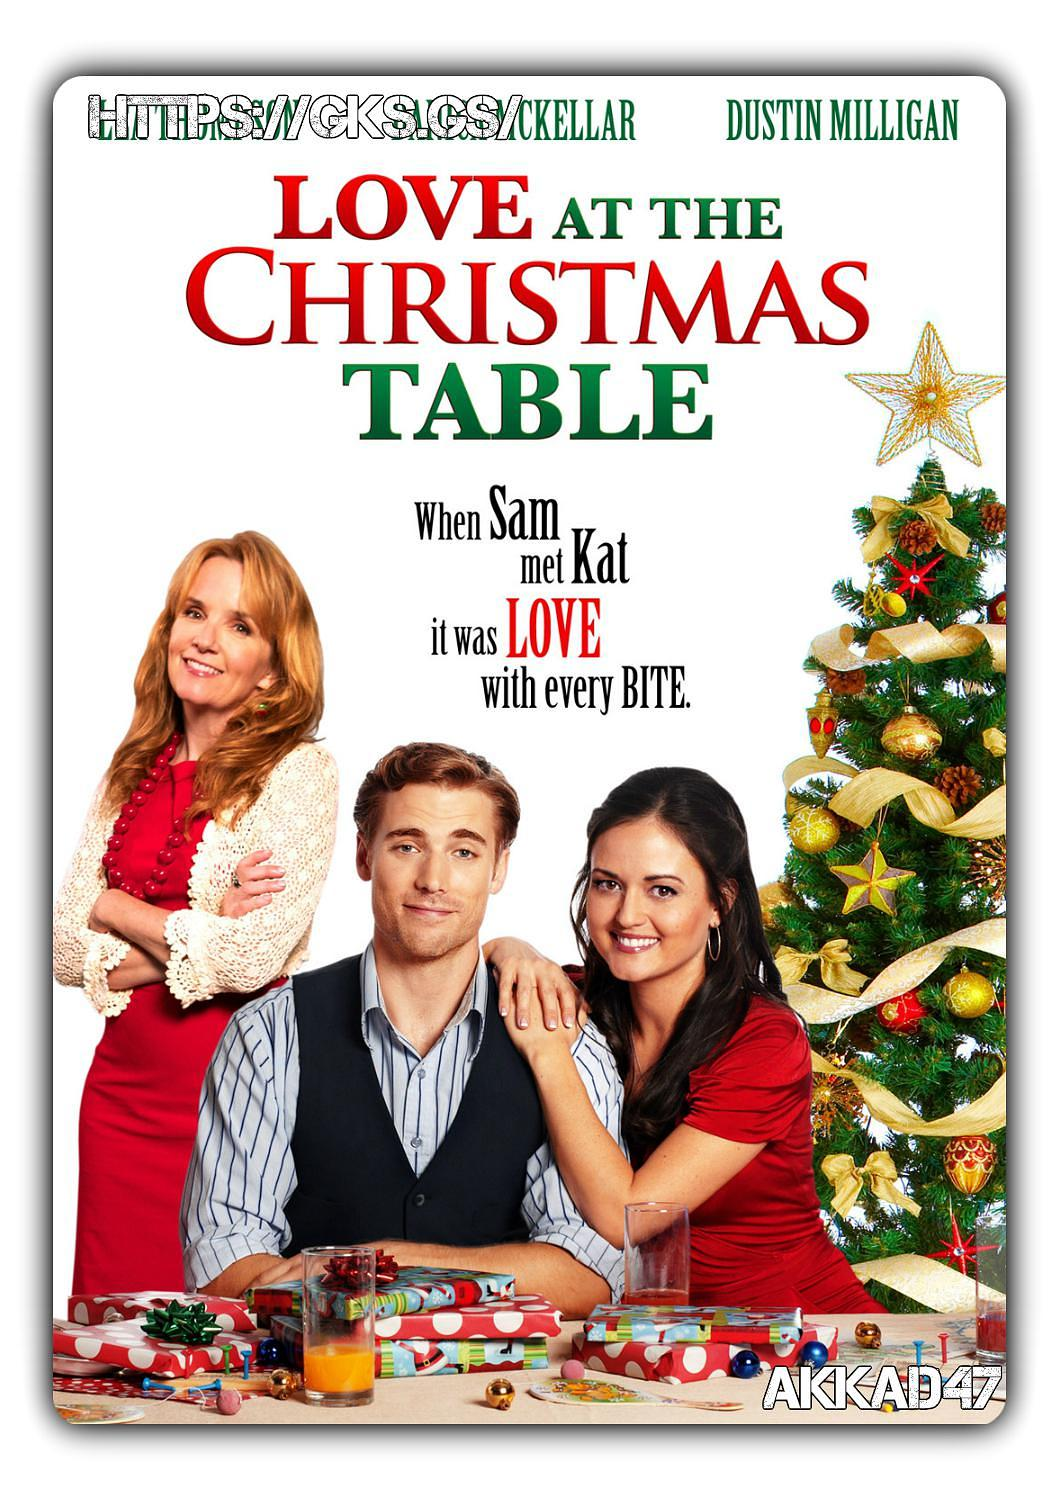 悠悠MP4_MP4电影下载_爱在圣诞餐桌旁/圣诞爱情 Love.at.the.Christmas.Table.2012.1080p.BluRay.x264-GUACAMOLE 6.56GB